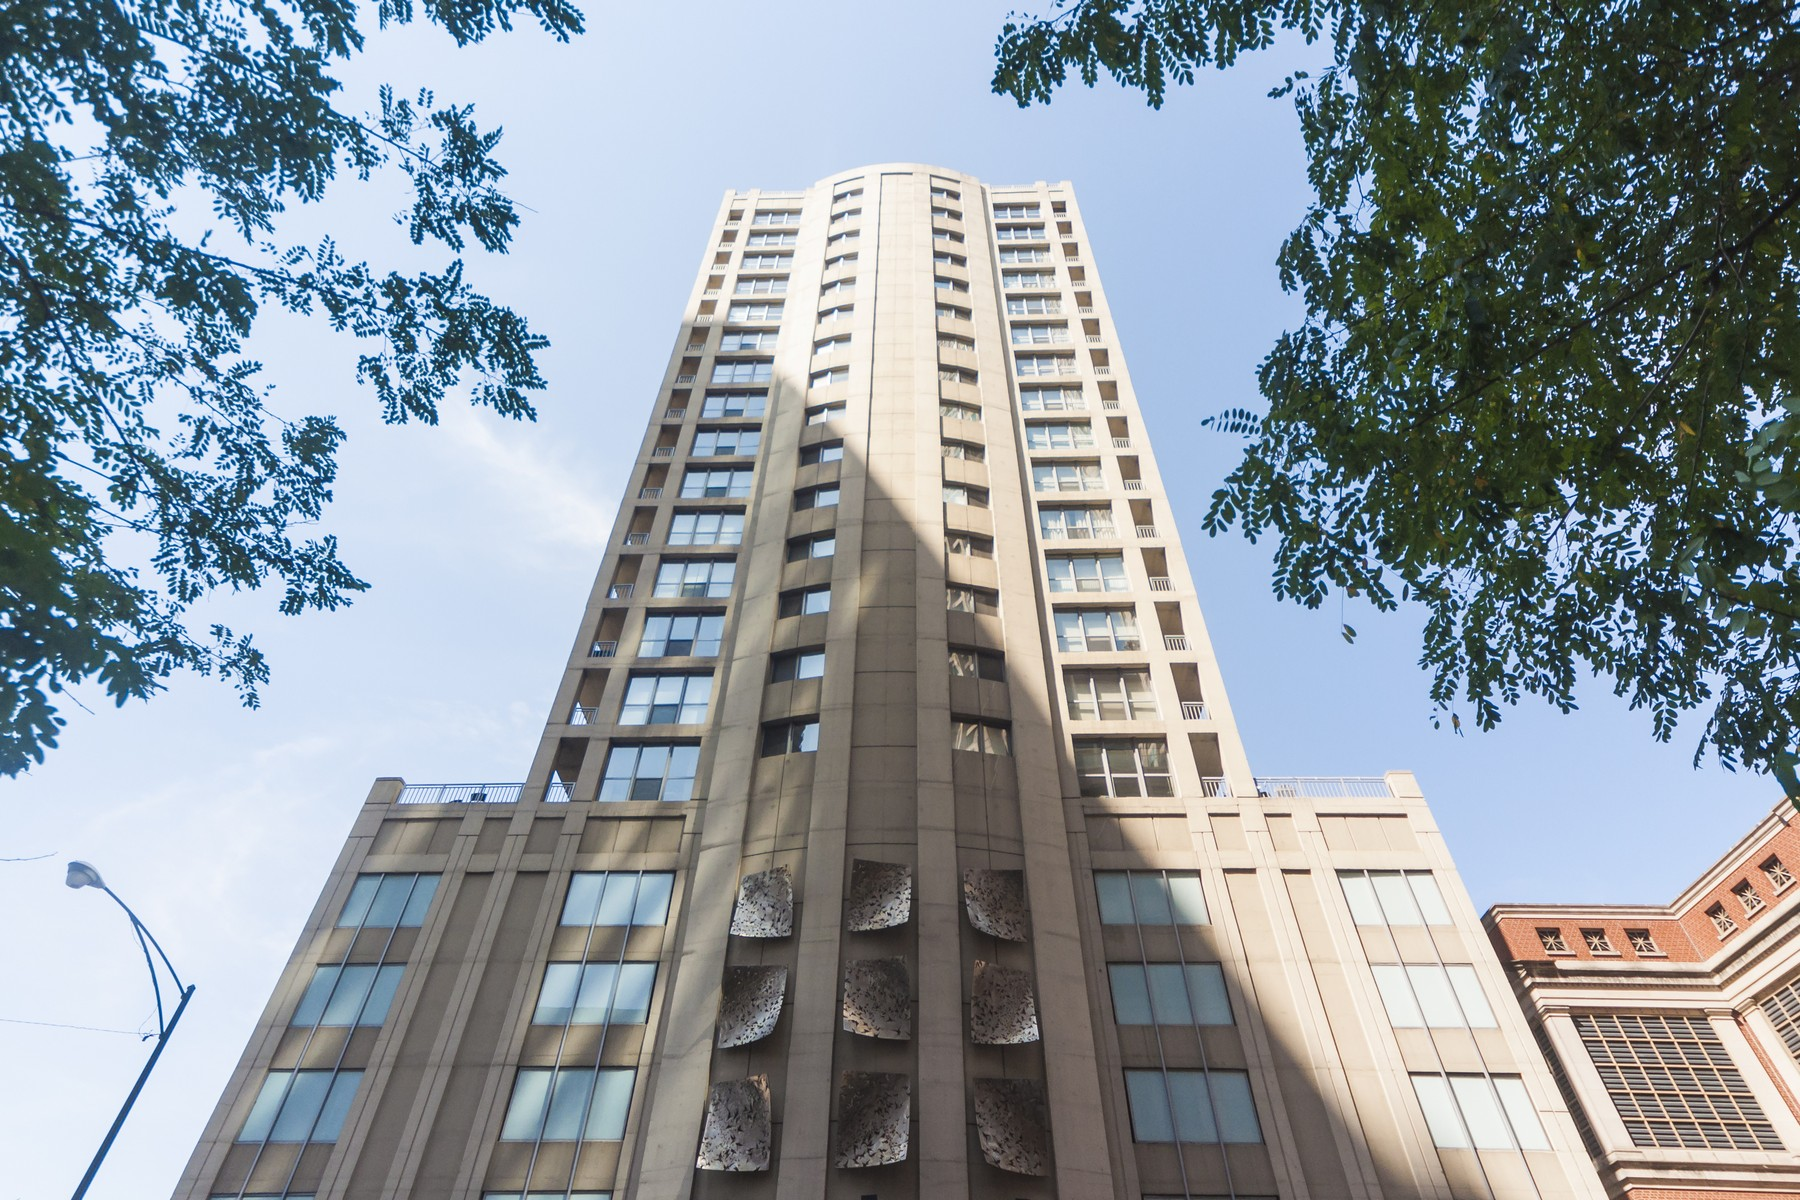 Condominium for Sale at Luxurious And Chic River North Home 600 N Dearborn Street Unit 306 Near North Side, Chicago, Illinois 60654 United States